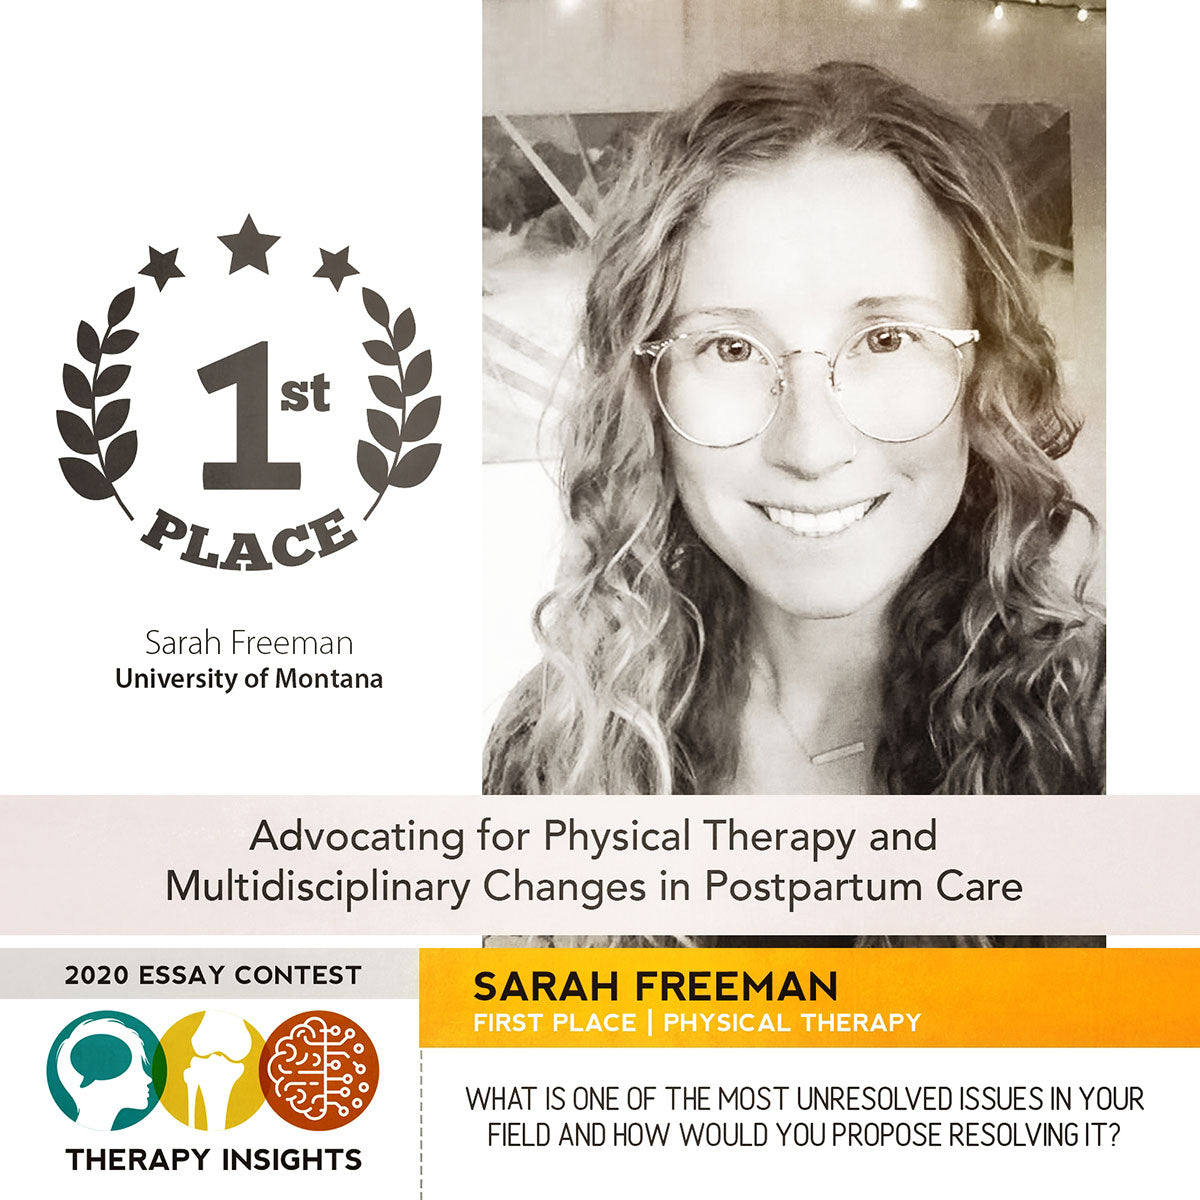 Physical Therapy and Multidisciplinary Changes in Postpartum Care by Sarah Freeman